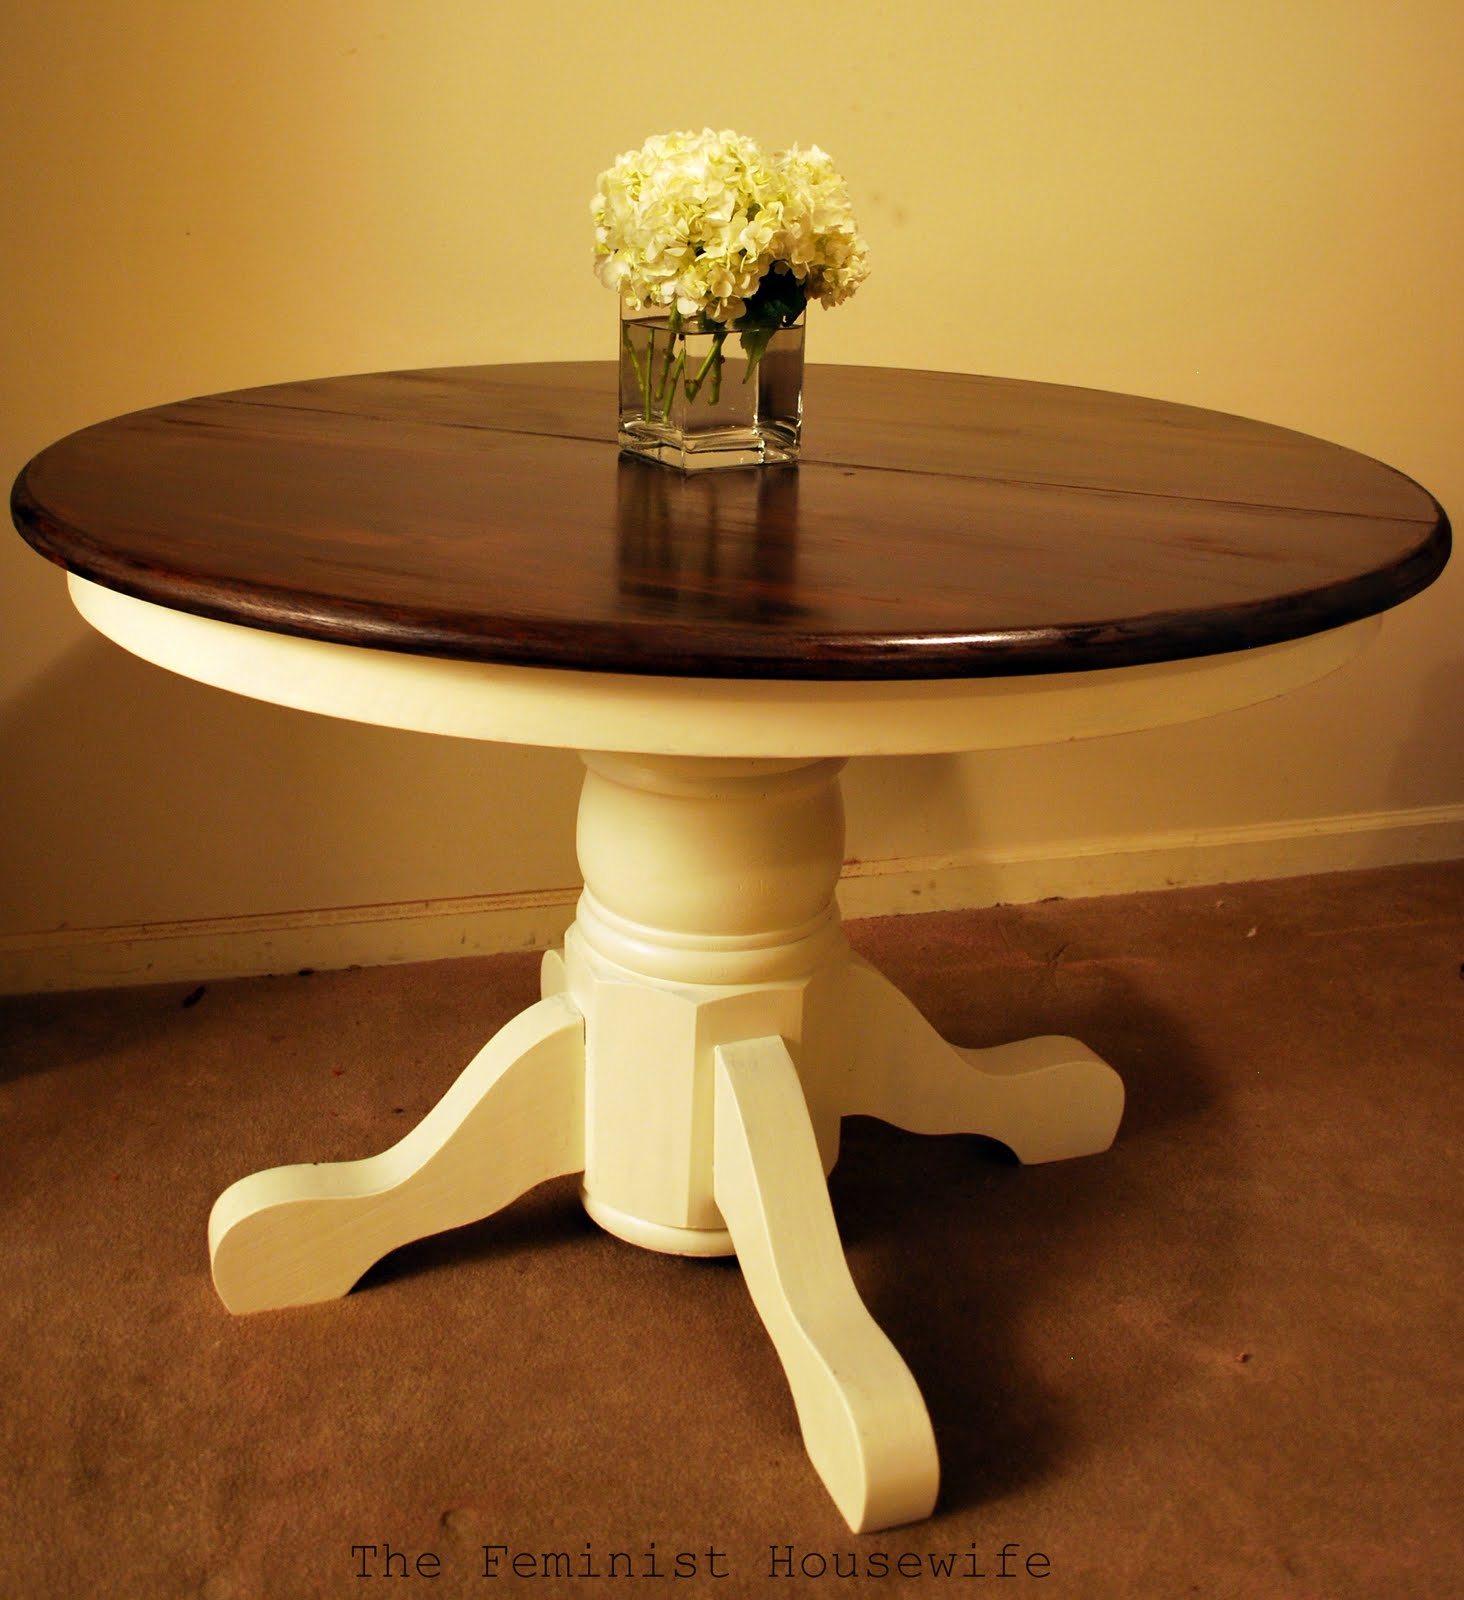 The feminist housewife pedestal table faq for Kitchen table ideas